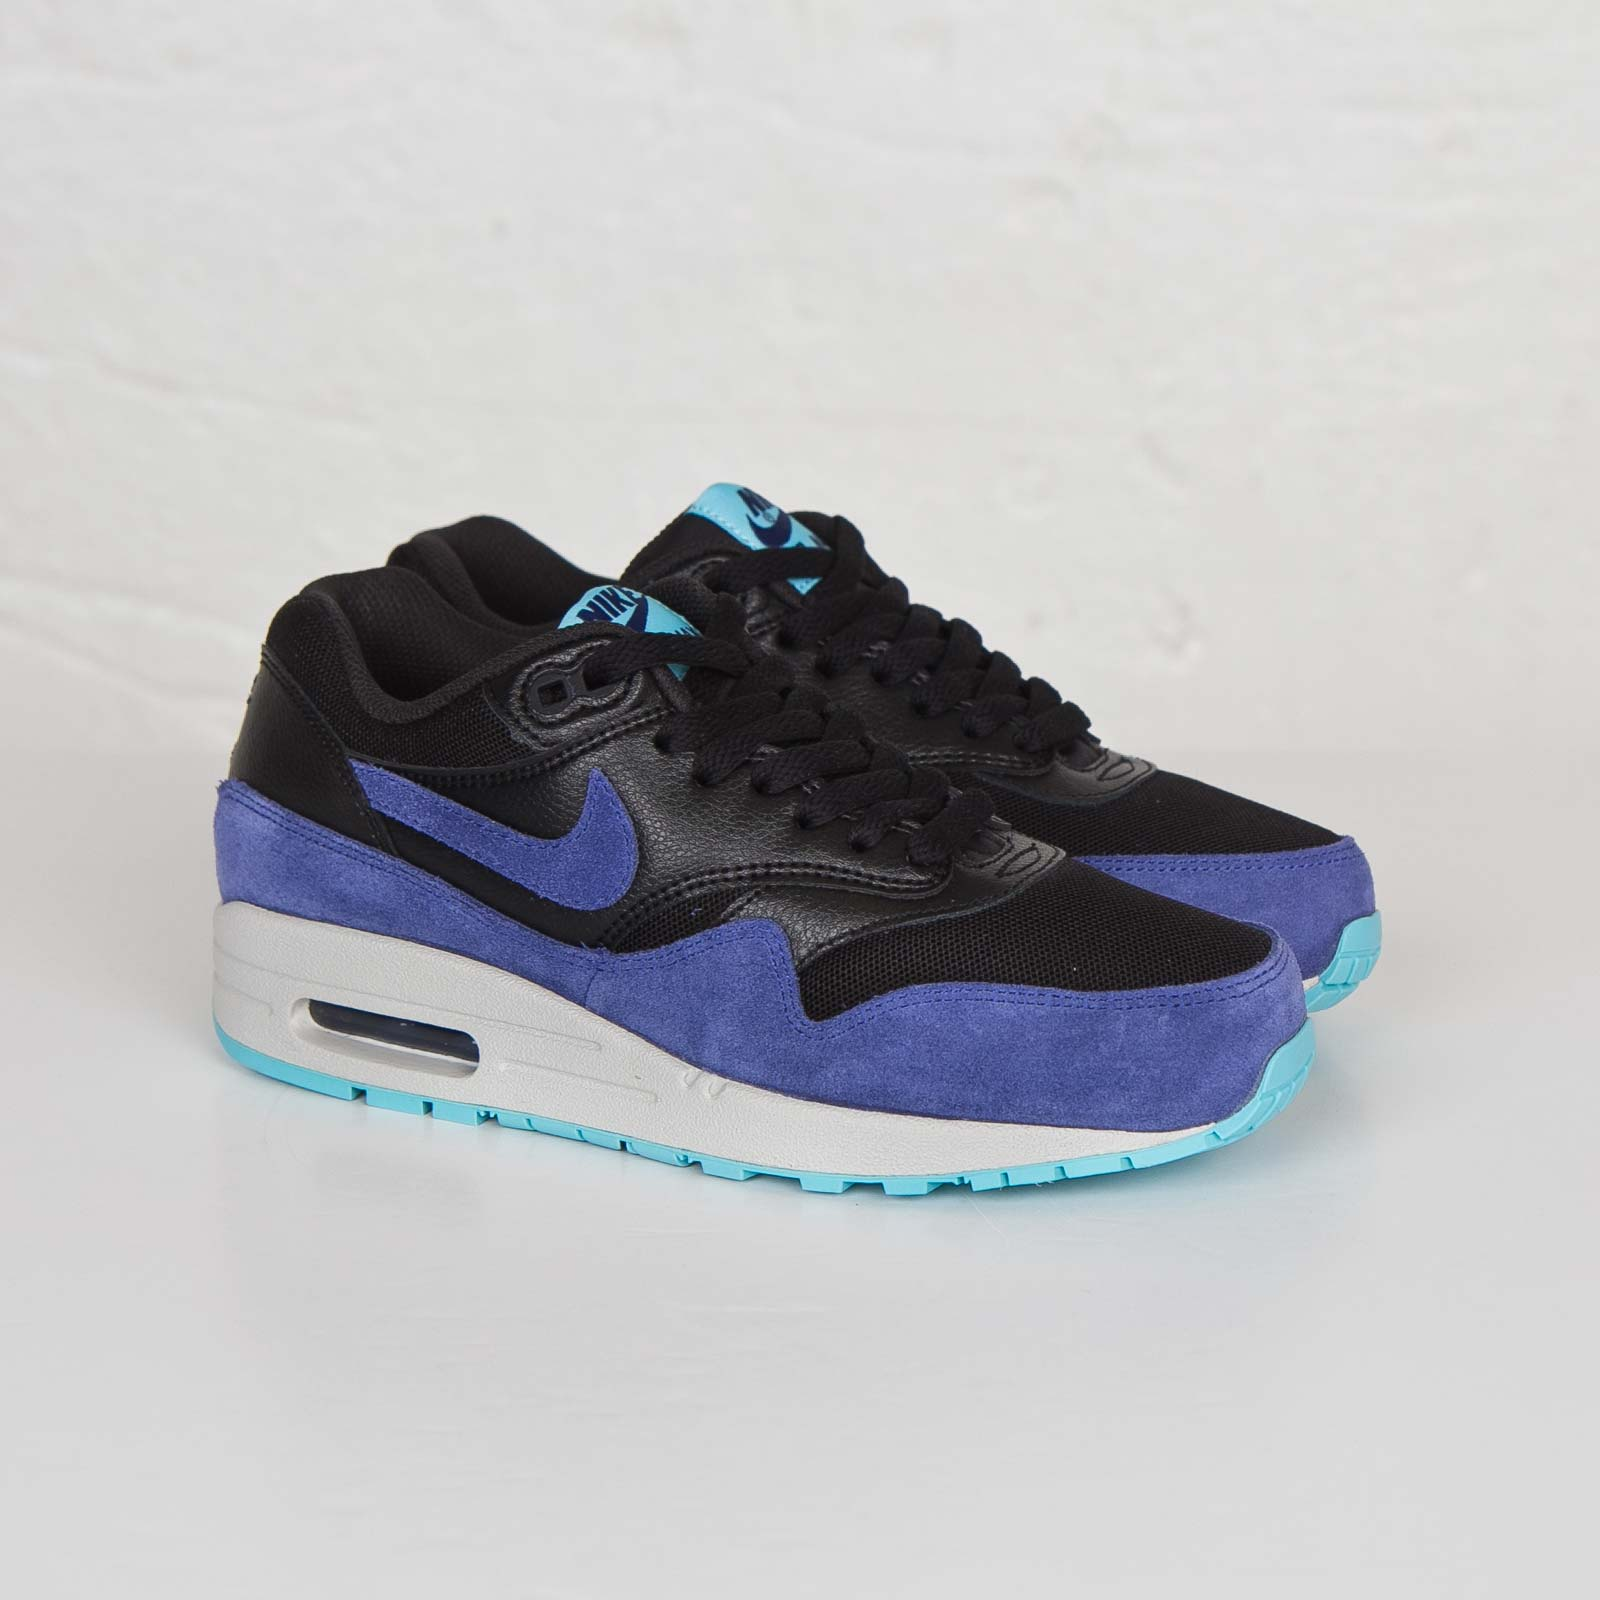 Nike Wmns Air Max 1 Essential 599820 016 Sneakersnstuff